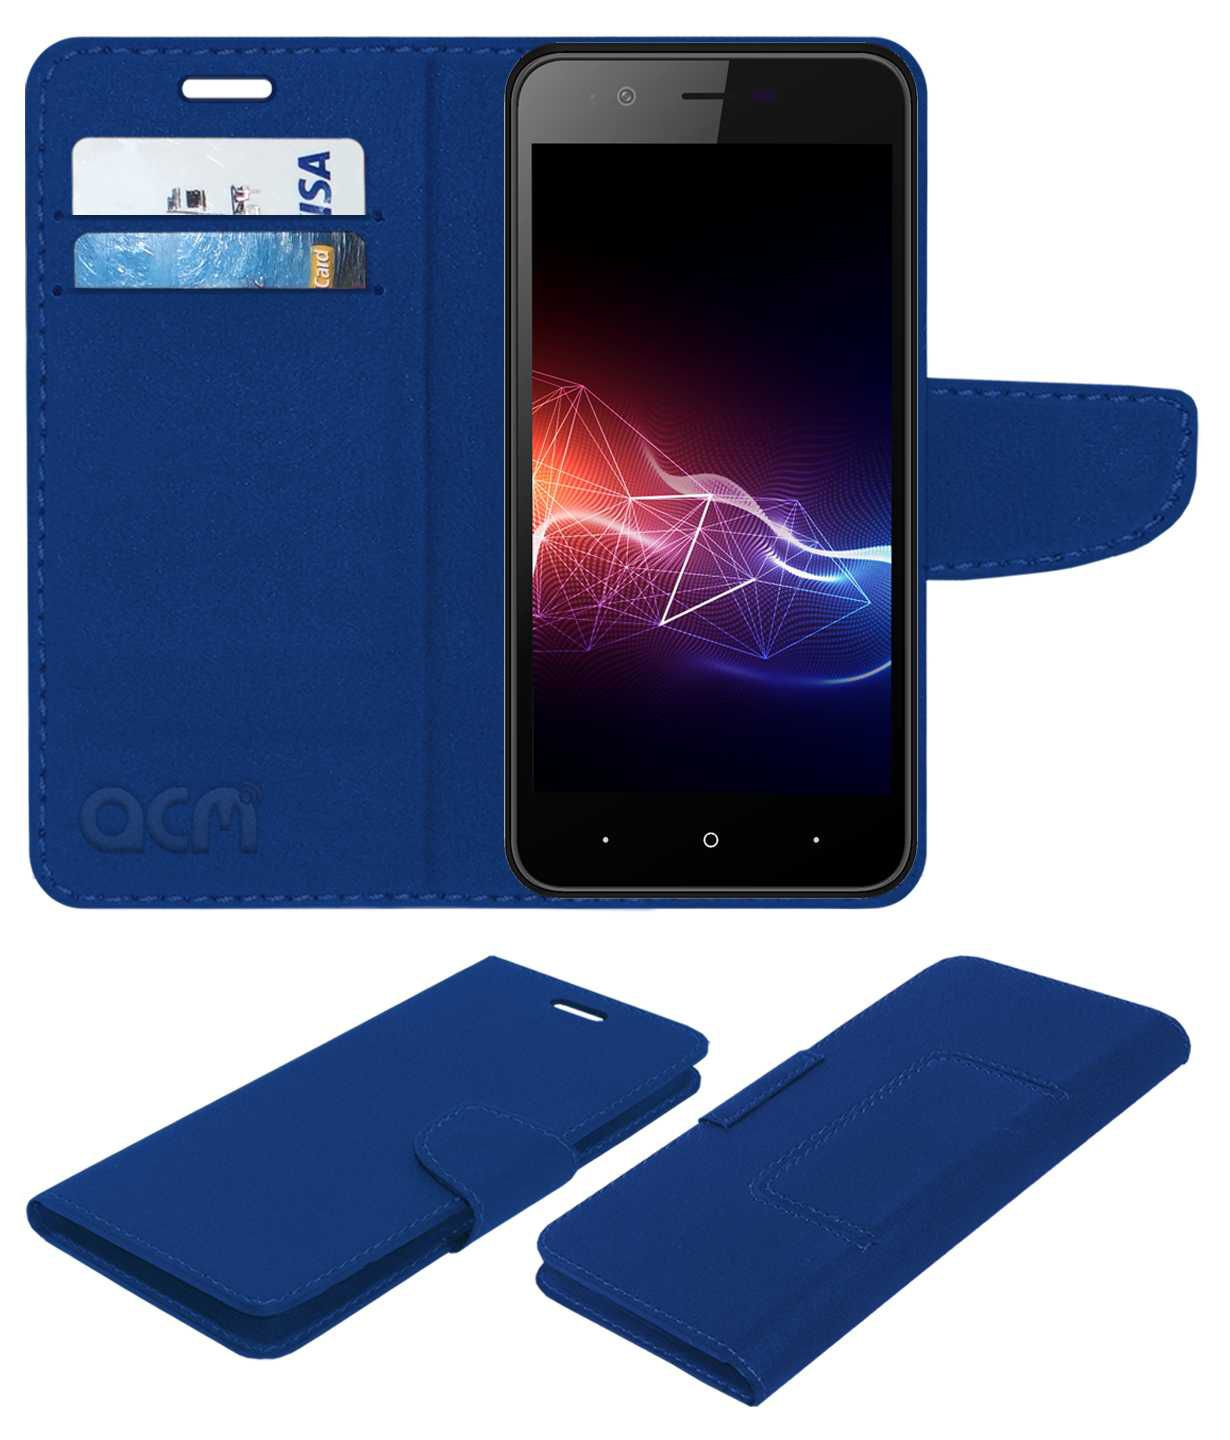 meet 3321c 1a2e7 PANASONIC P91 Flip Cover by ACM - Blue